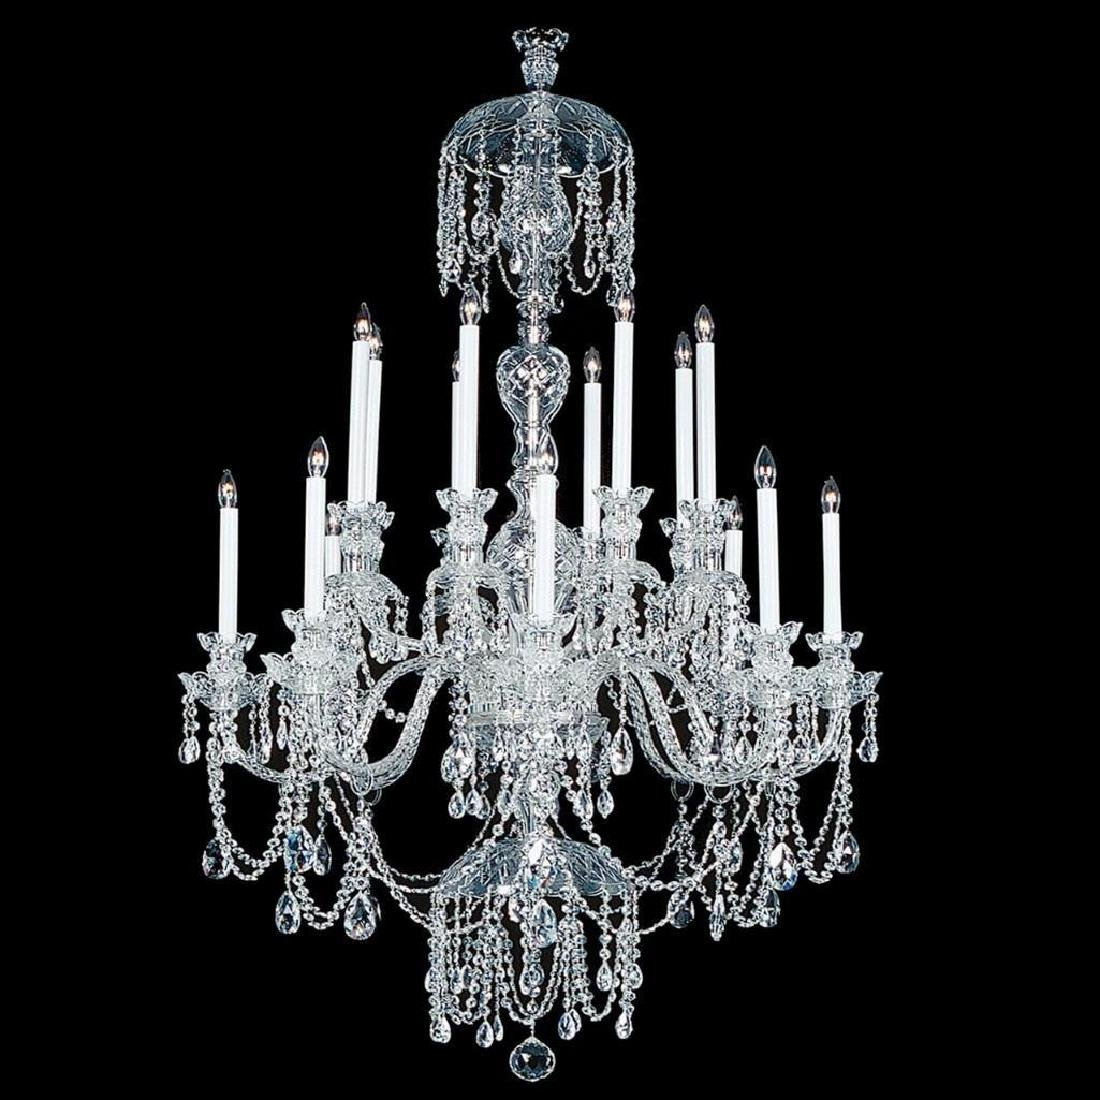 Winter Elegance - 16 Light Crystal Chandelier with - 2